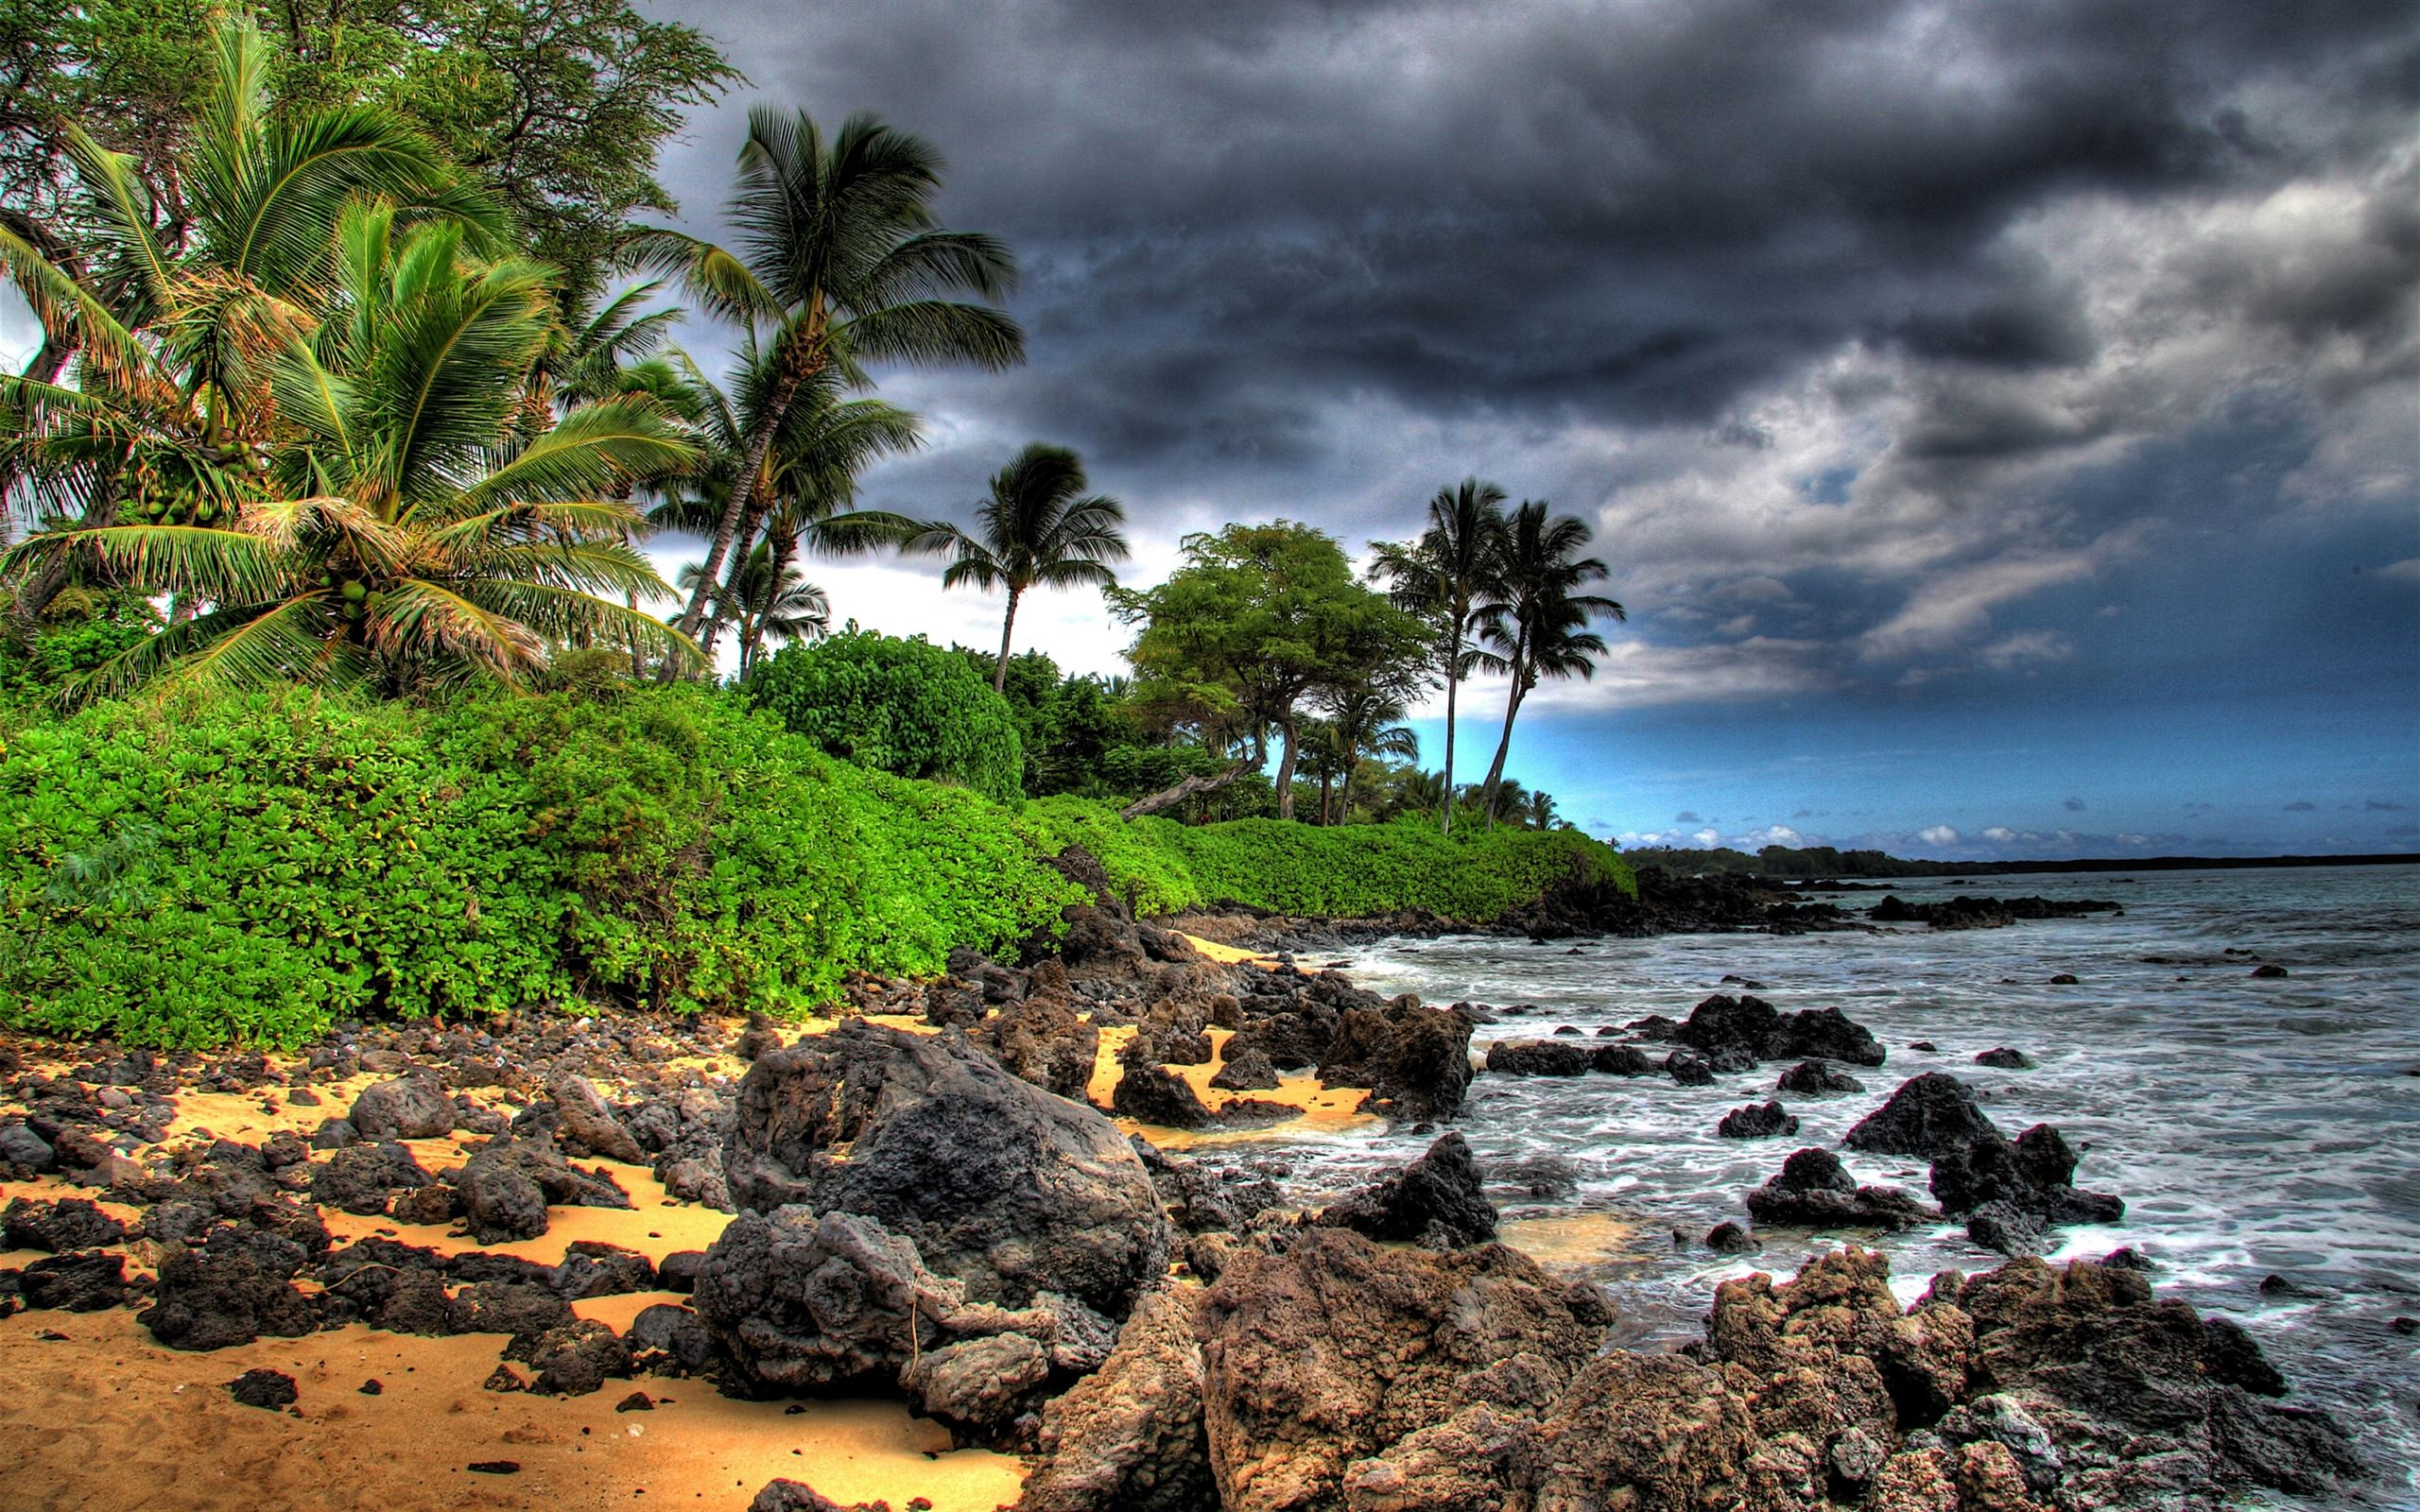 maui island mac wallpaper download free mac wallpapers